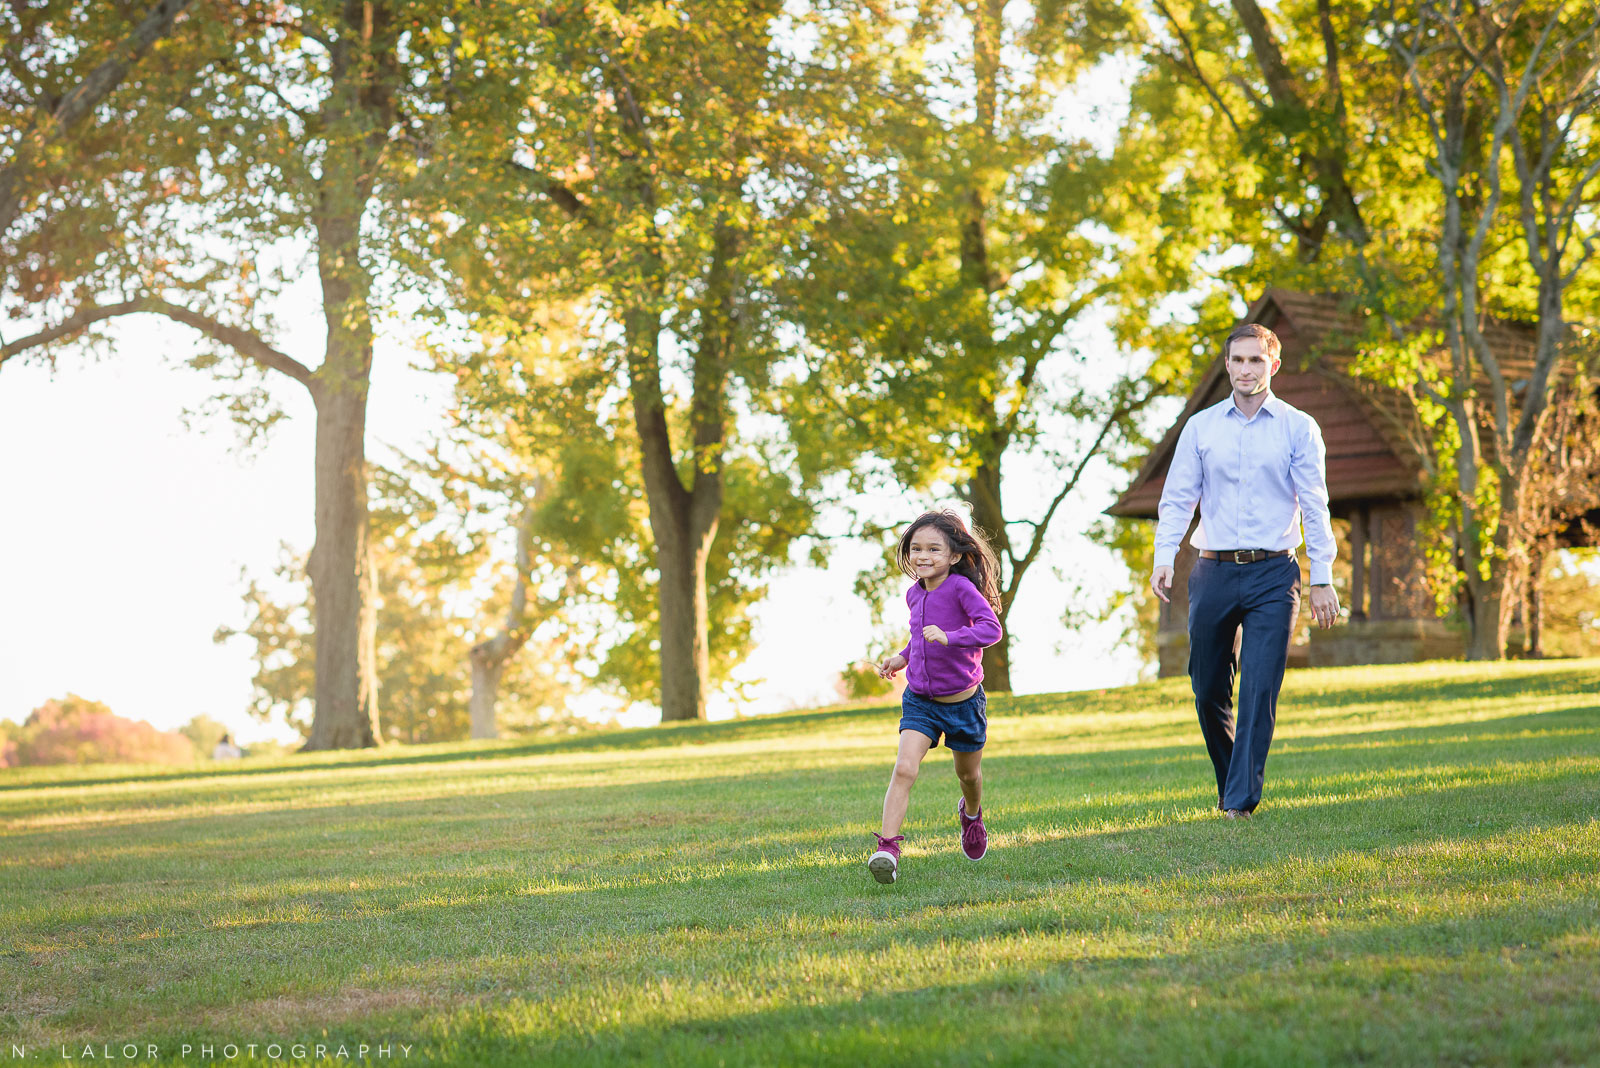 Father daughter lifestyle portrait in a grassy field by N. Lalor Photography. Waveny Park, New Canaan, Connecticut.